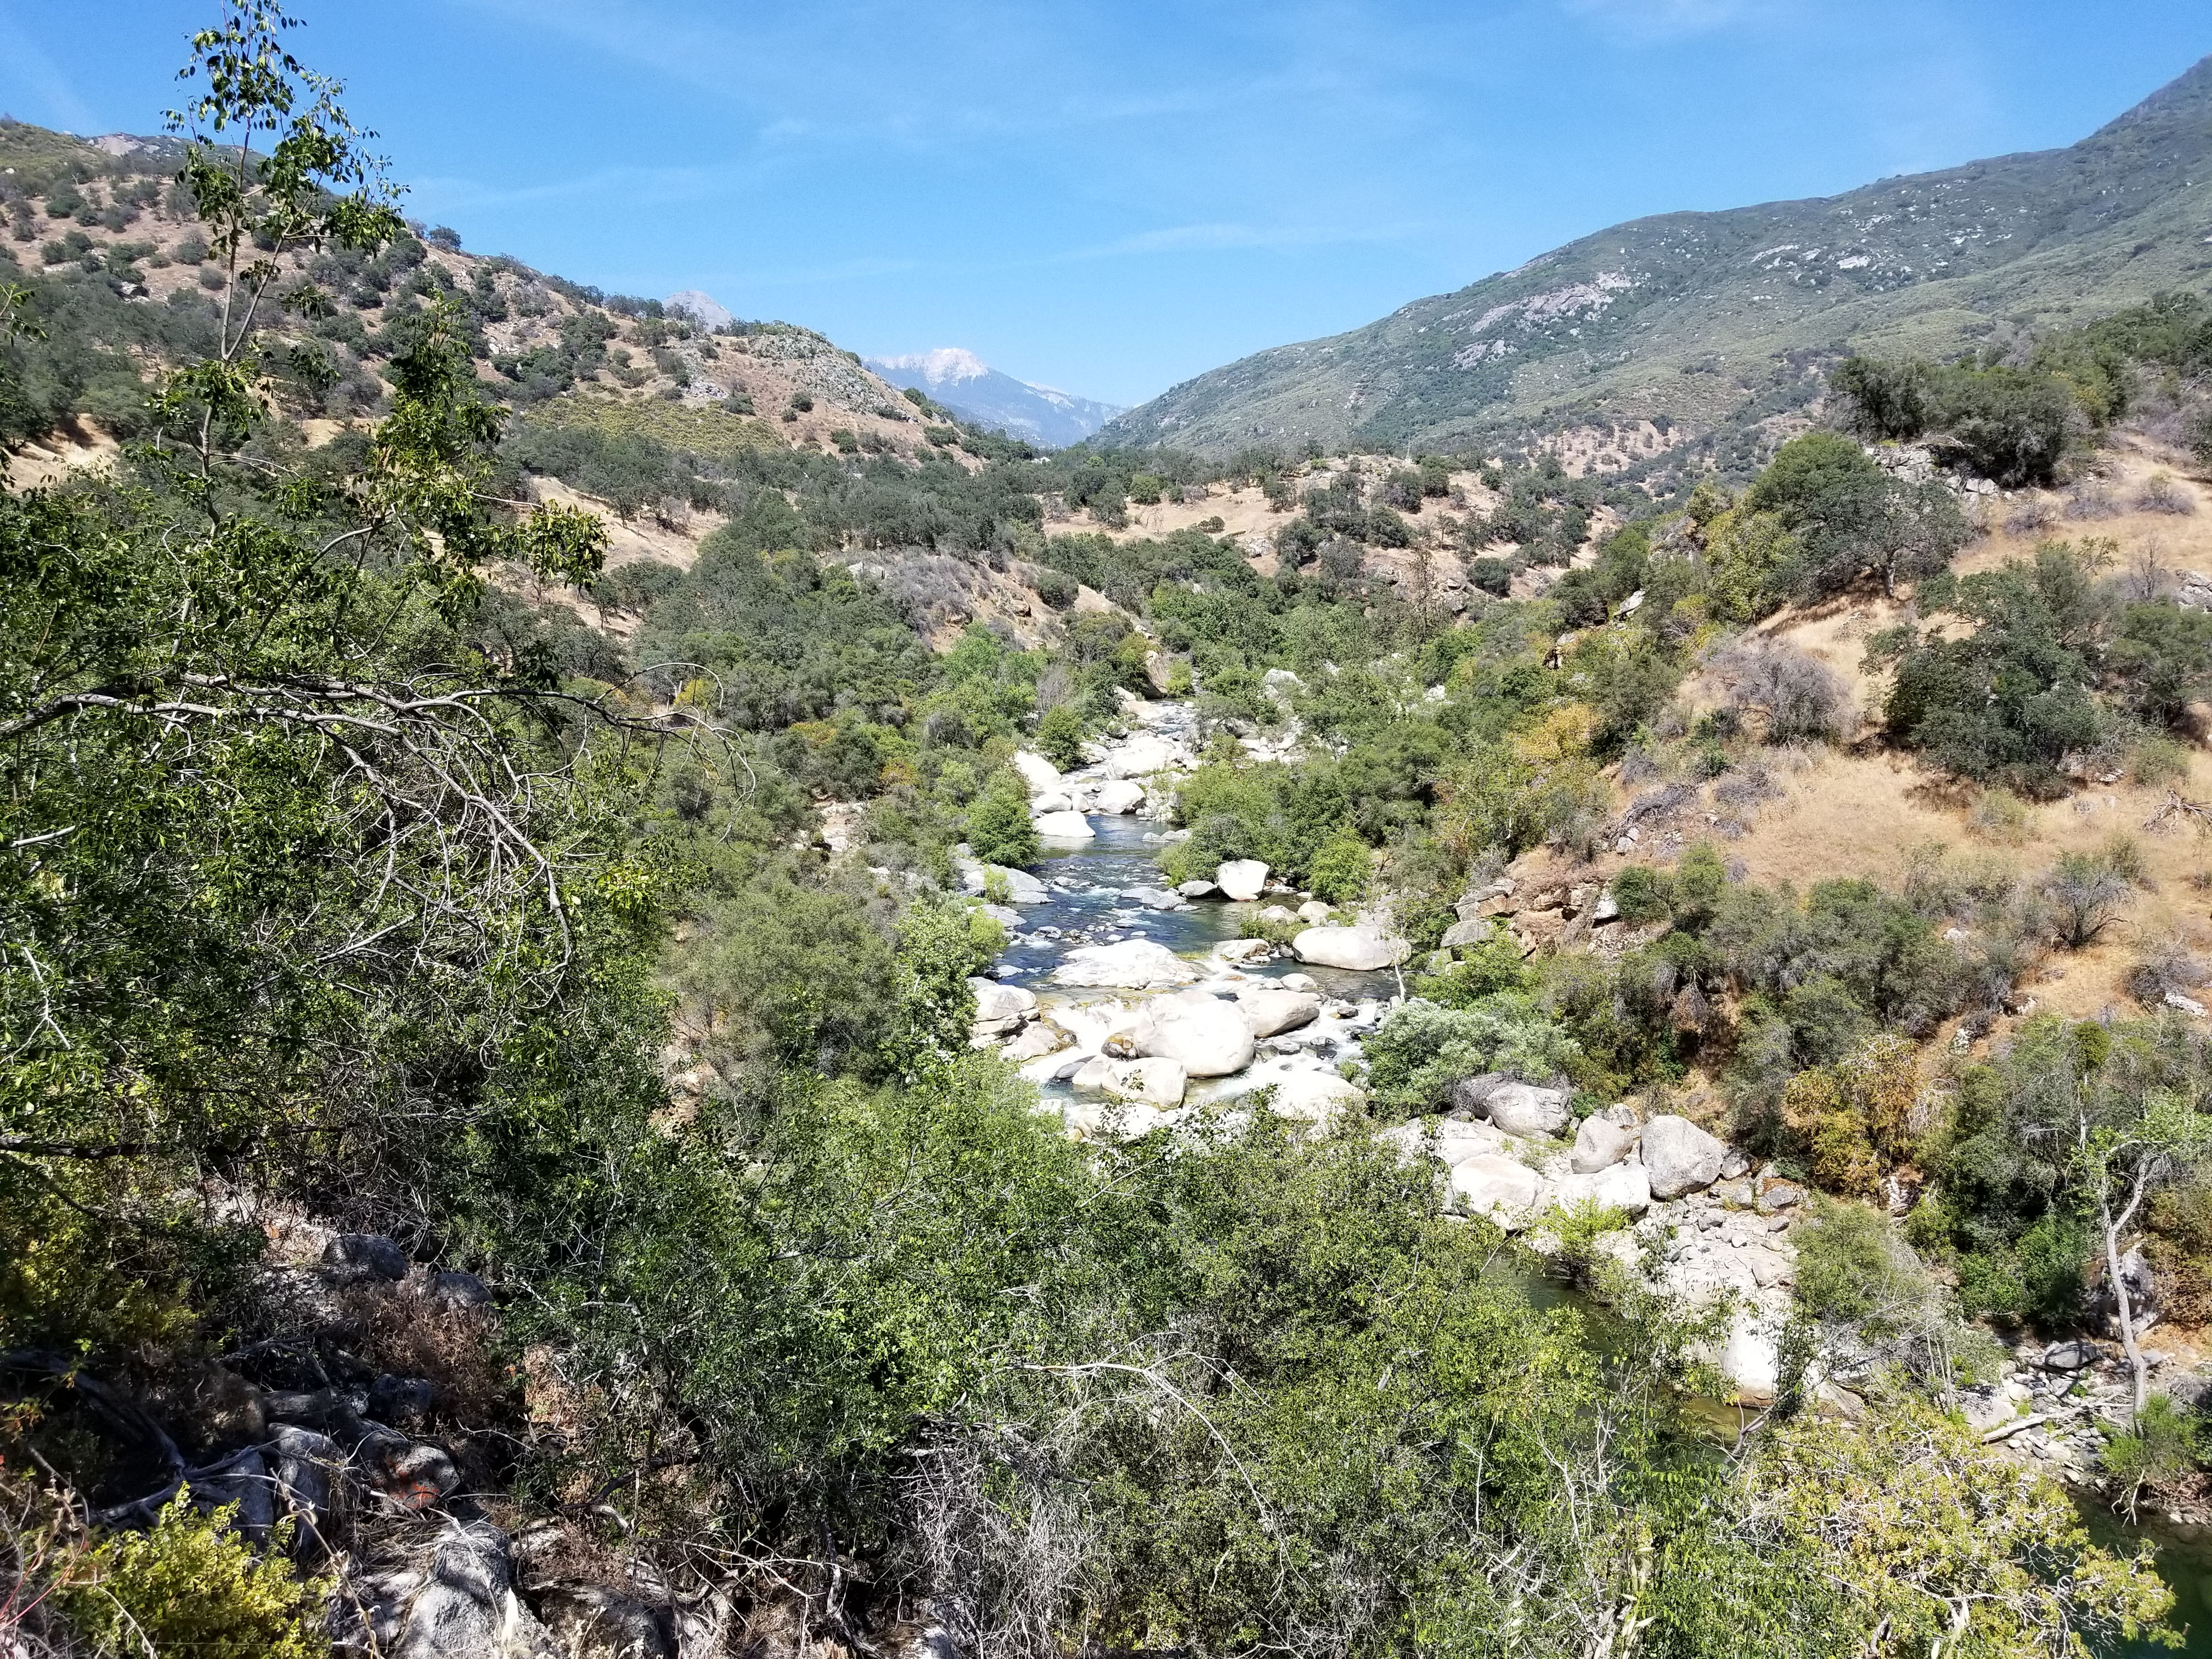 The Kaweah River looking up stream from inside Sequoia National Park